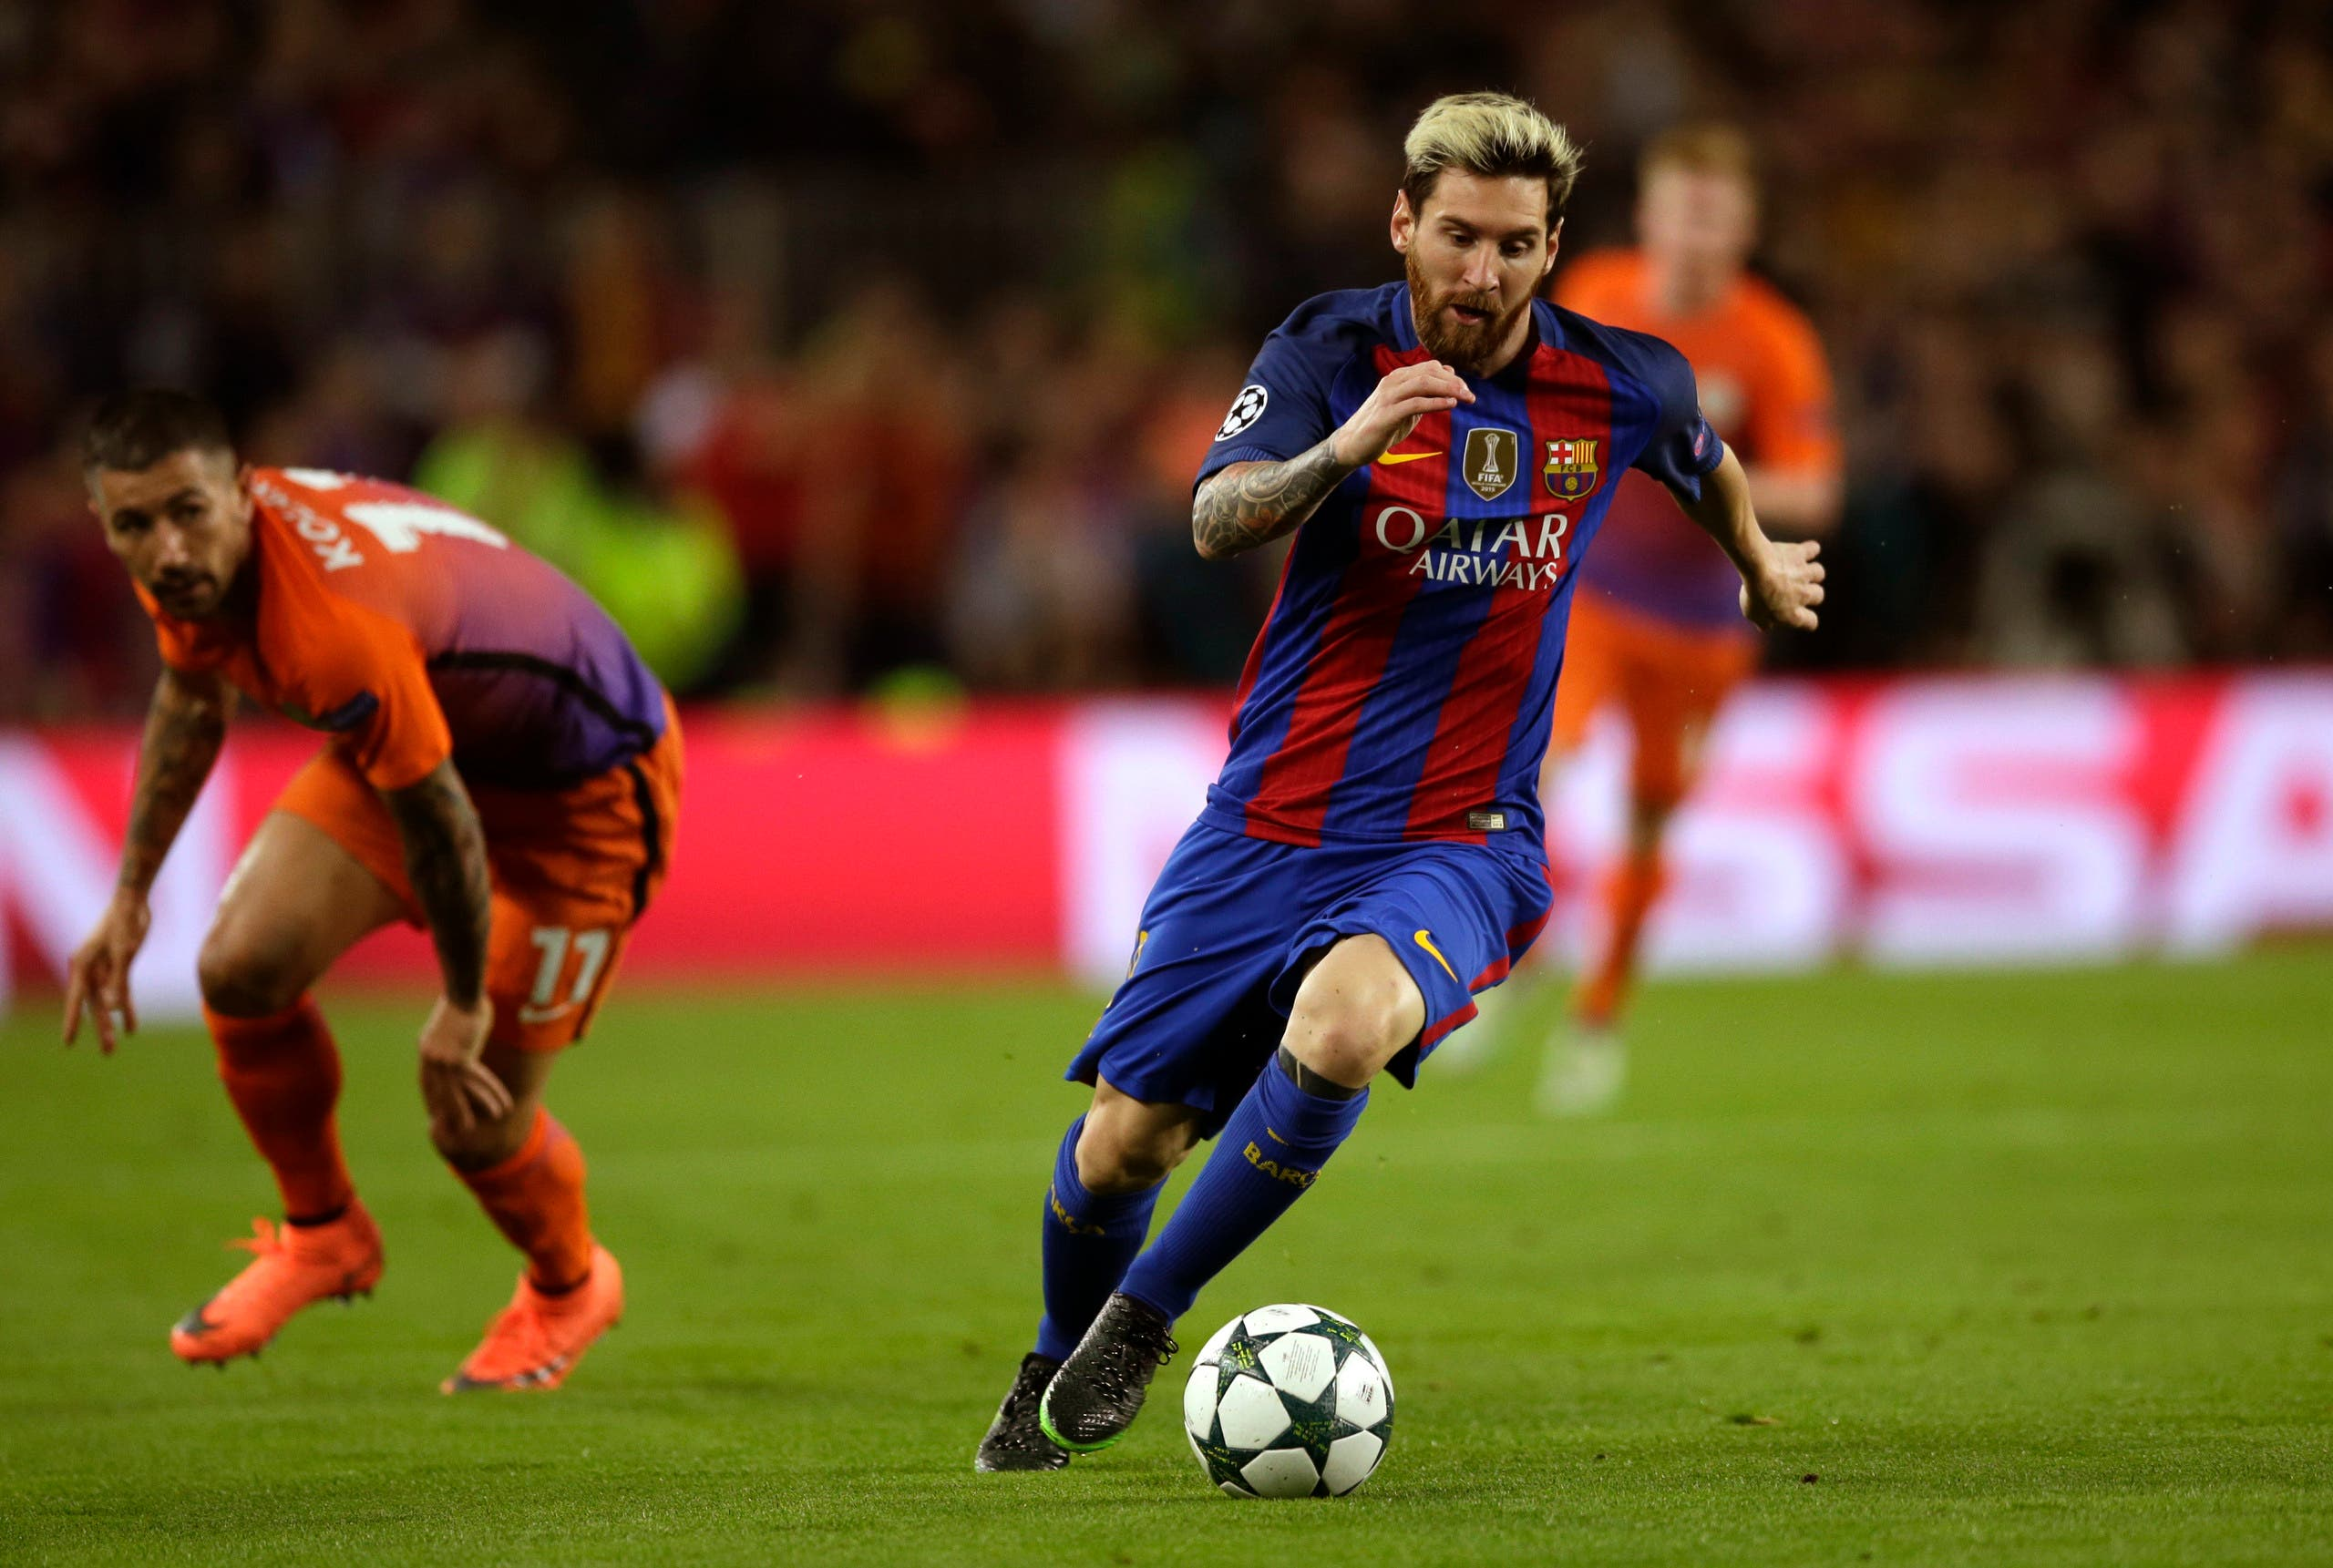 afe17472b43a Barcelona's Lionel Messi fights for the ball next to Manchester City's  Aleksandar Kolarov during a Champions League, Group C soccer match between  Barcelona ...